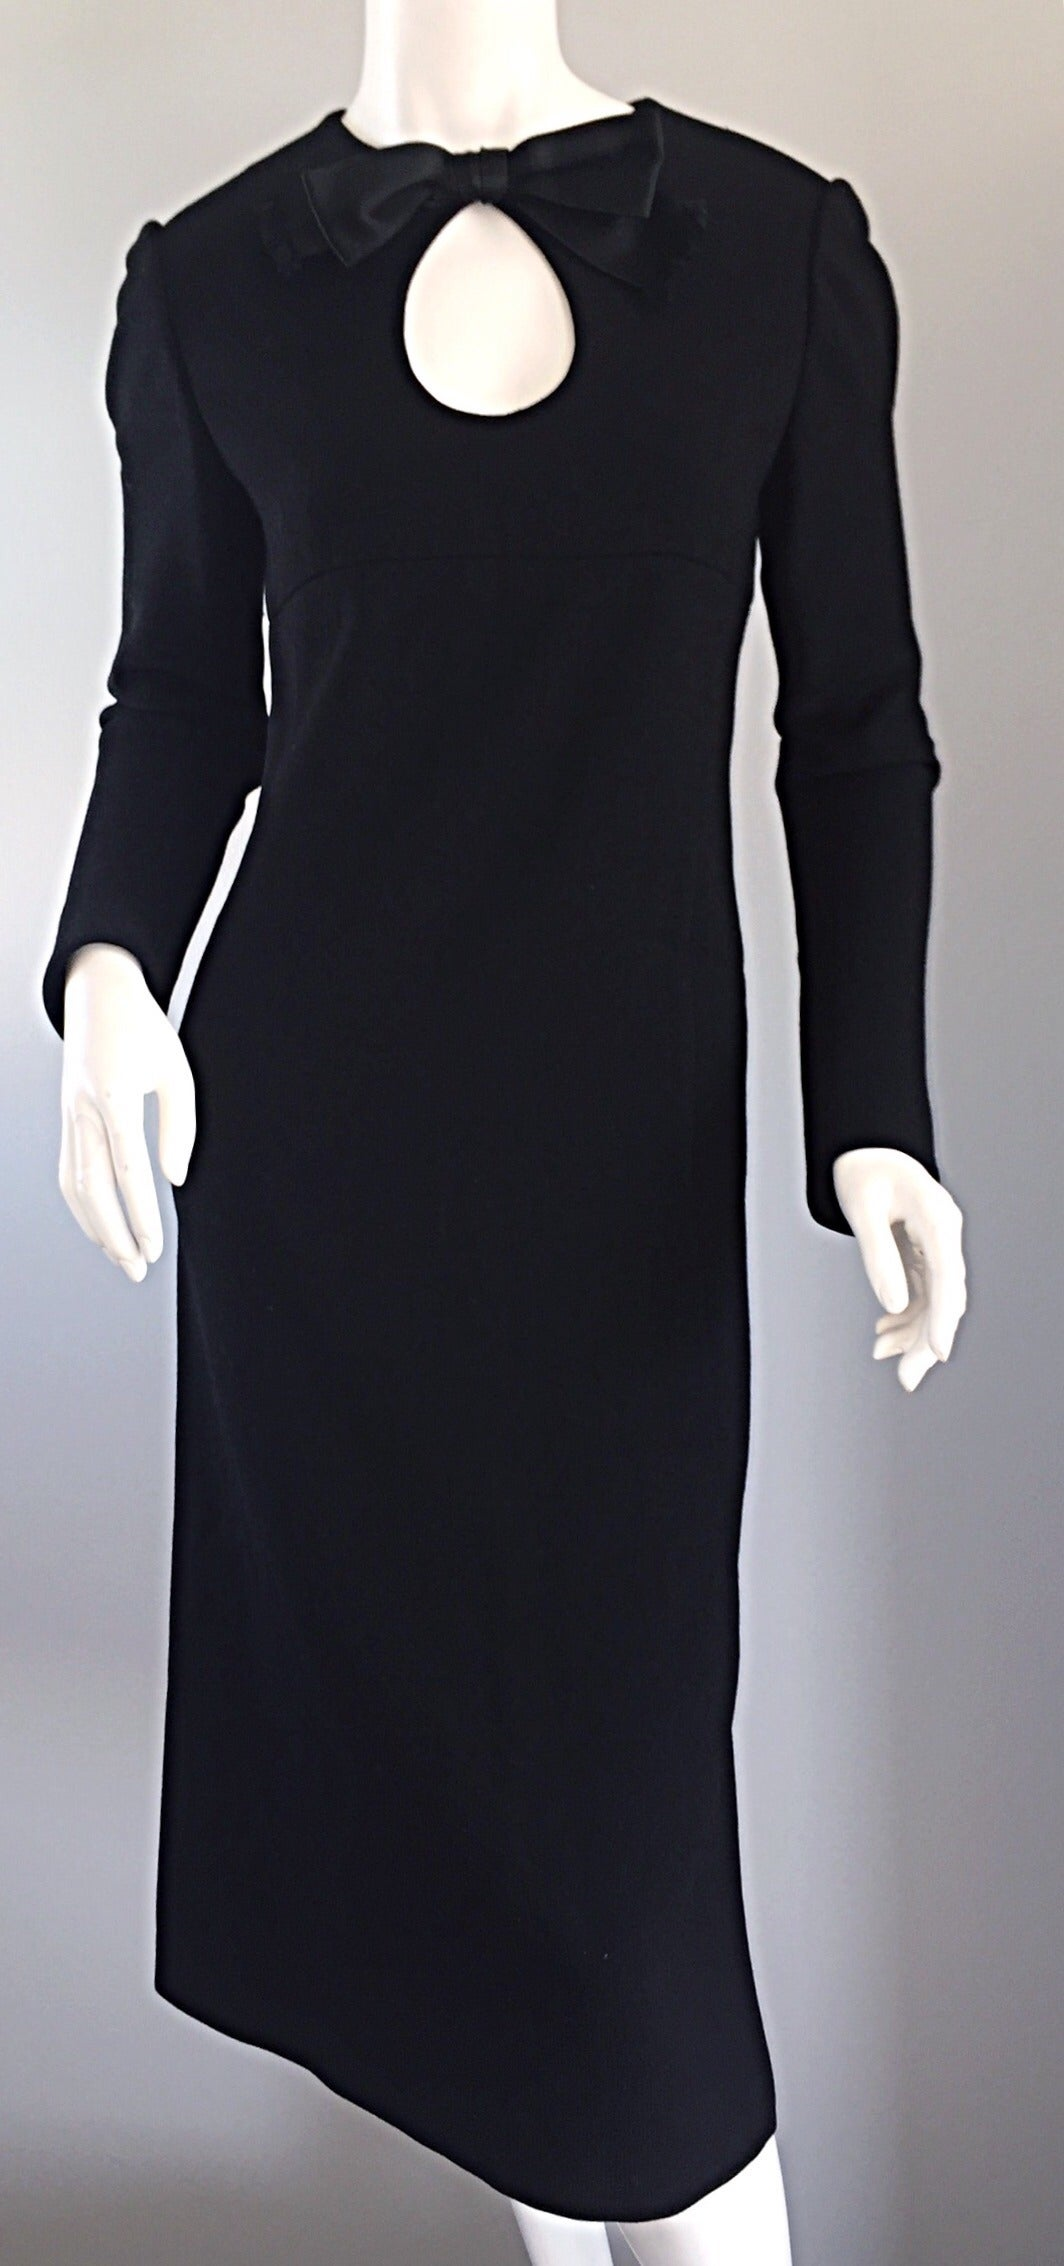 Iconic Vintage Pierre Cardin 1960s 60s Black Wool Cut - Out Dress w/ Bow For Sale 3